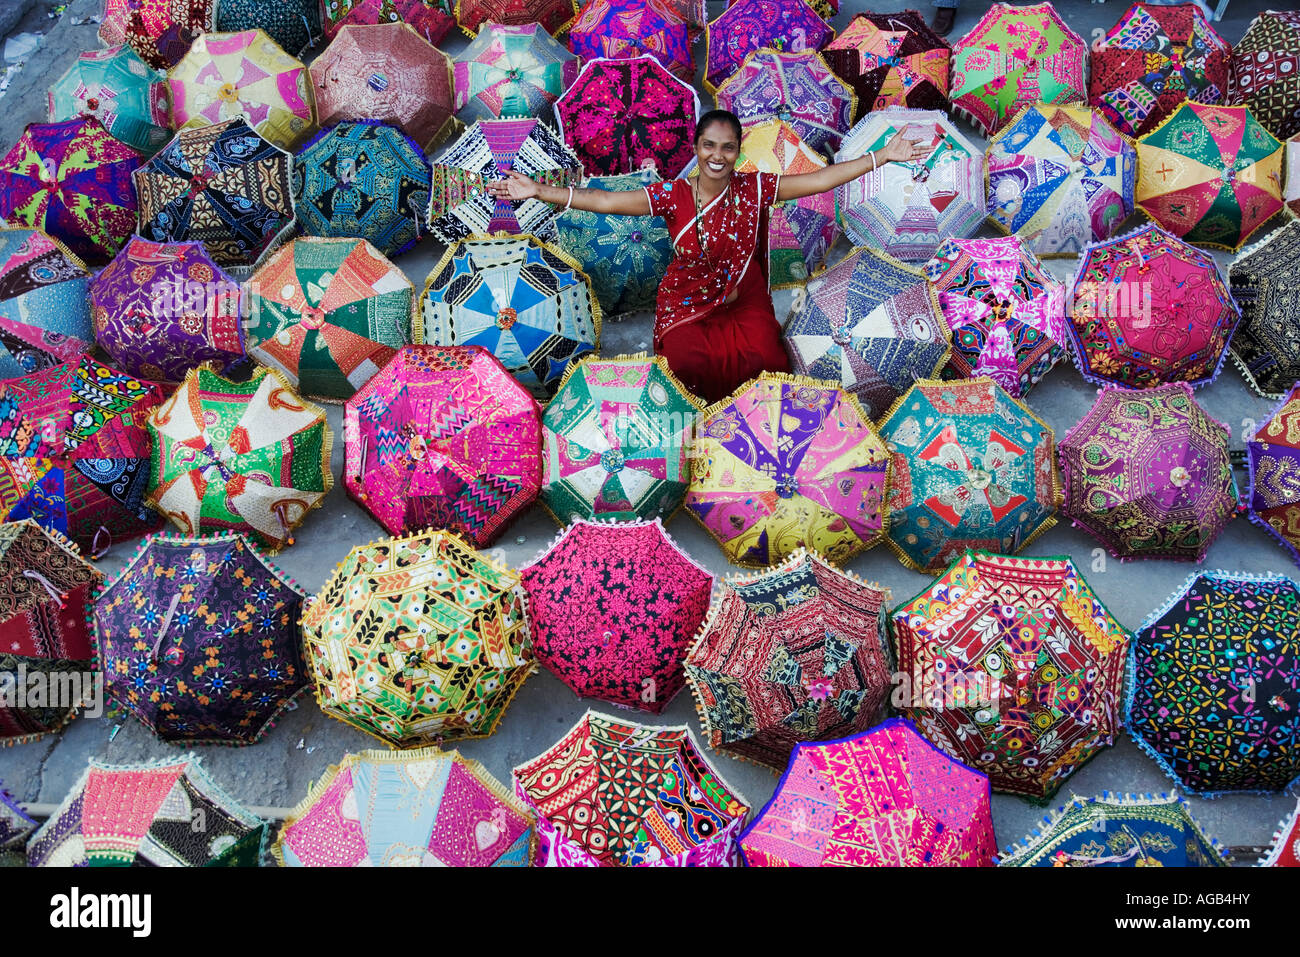 Woman in sari admiring colourful umbrellas outside a shop Jaipur India Model Released Property Released - Stock Image